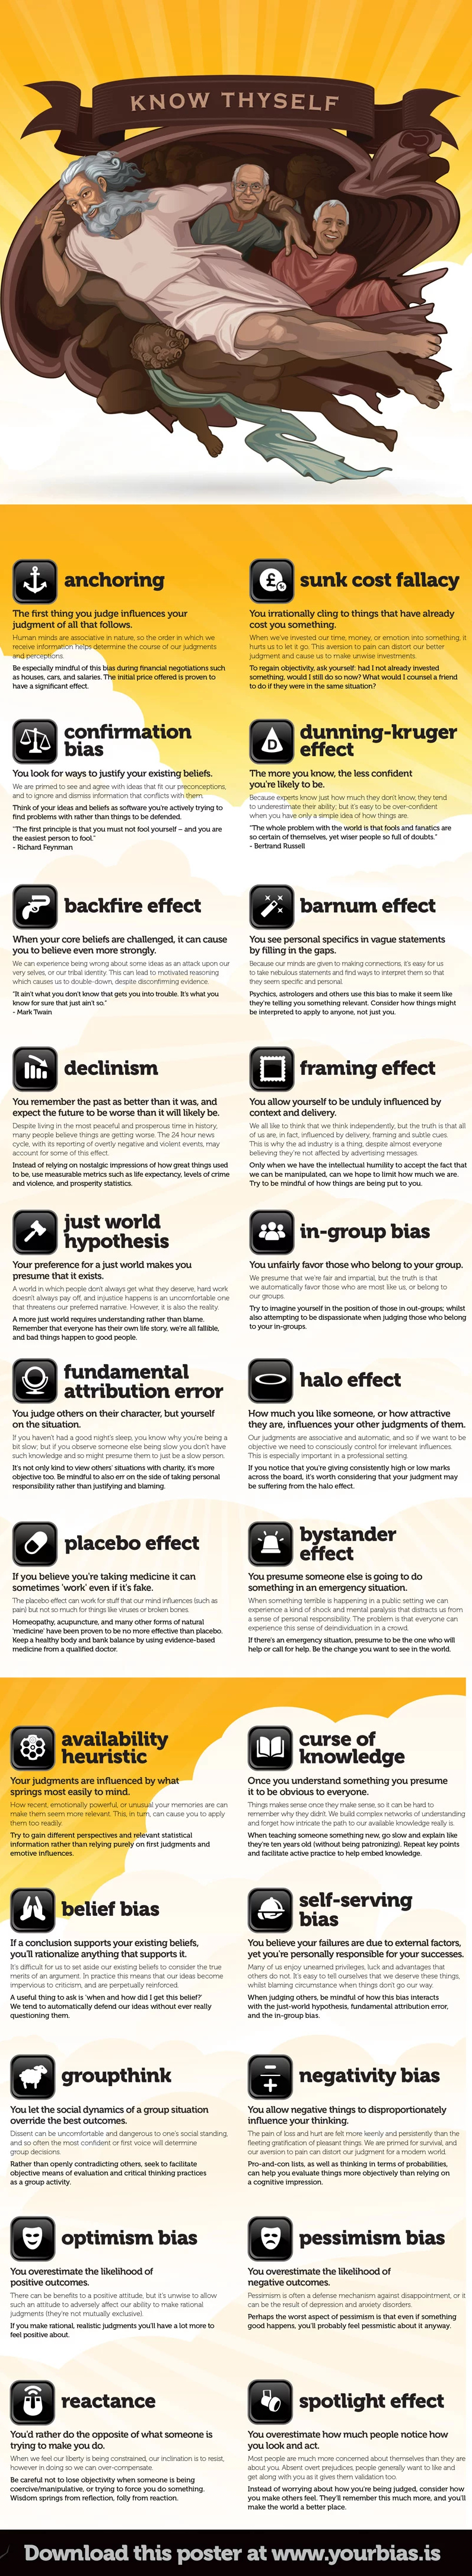 cognitive-bias-descriptions.jpg